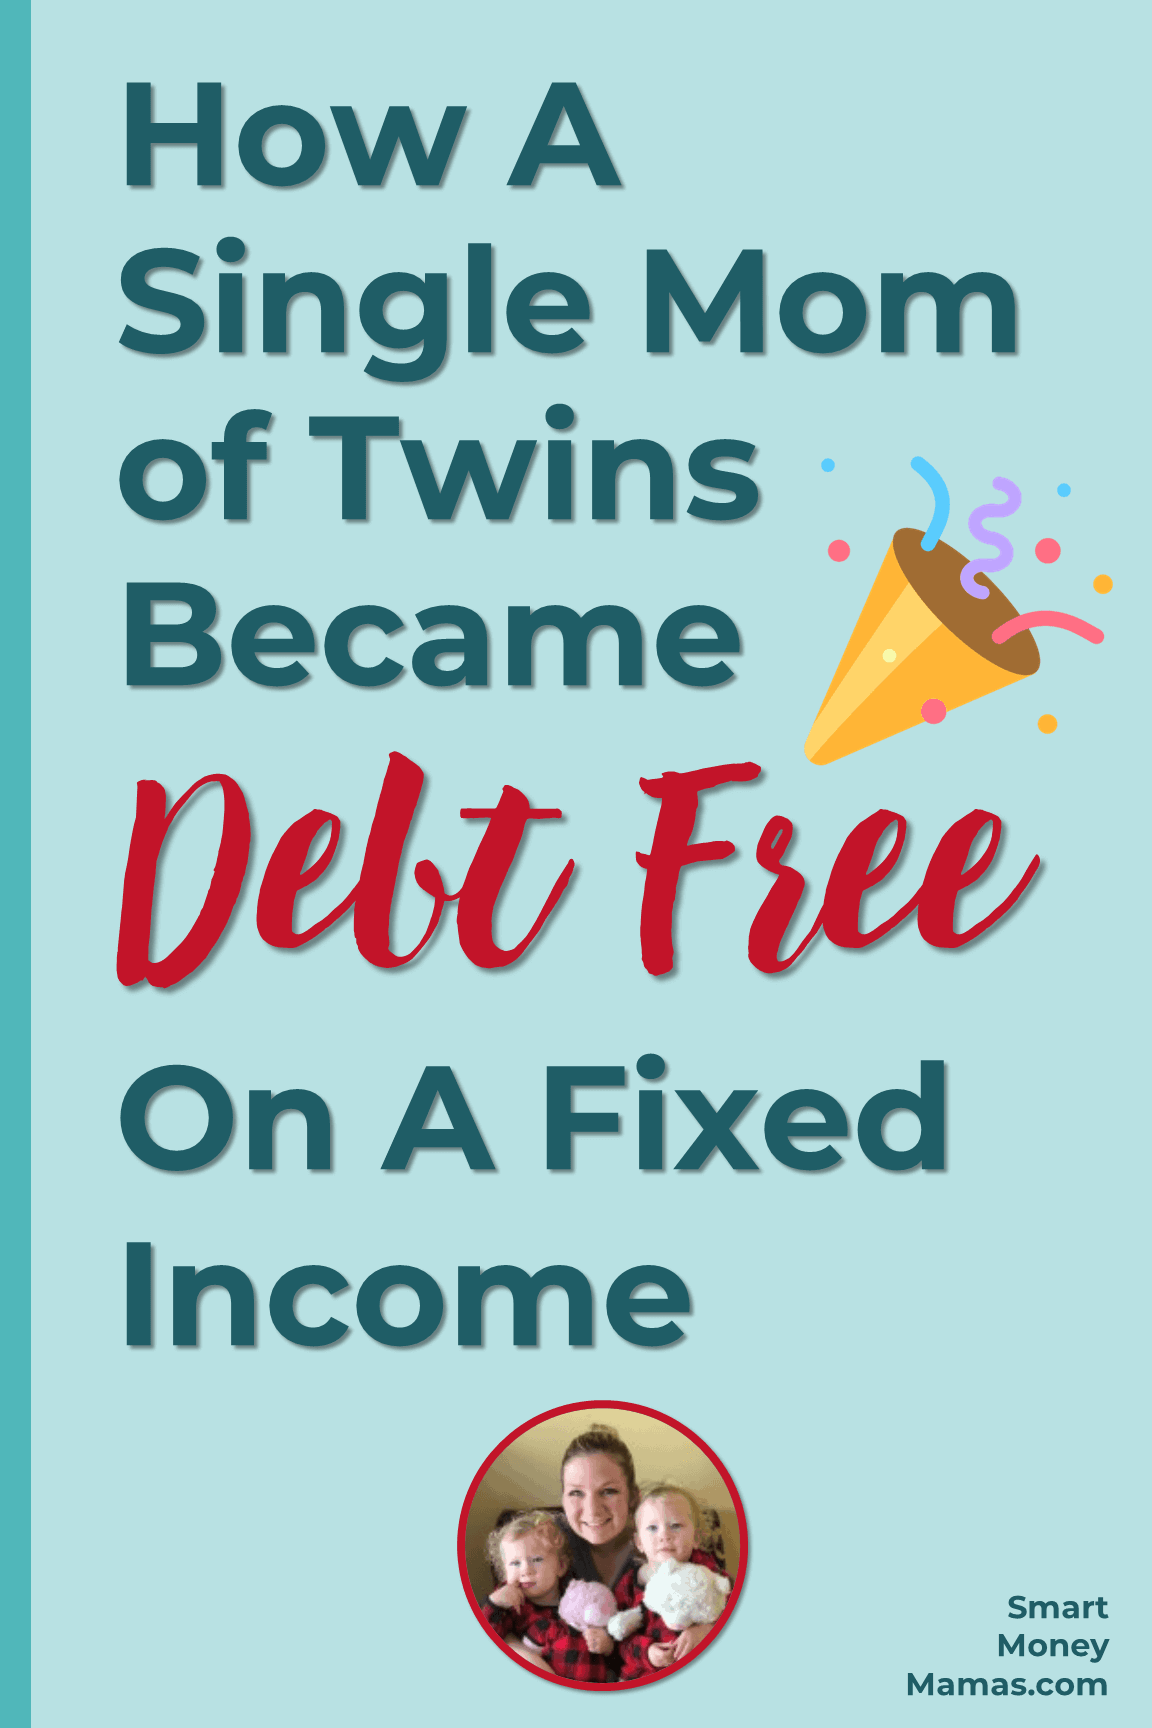 How a Single Mom of Twins Became Debt Free On a Fixed Income